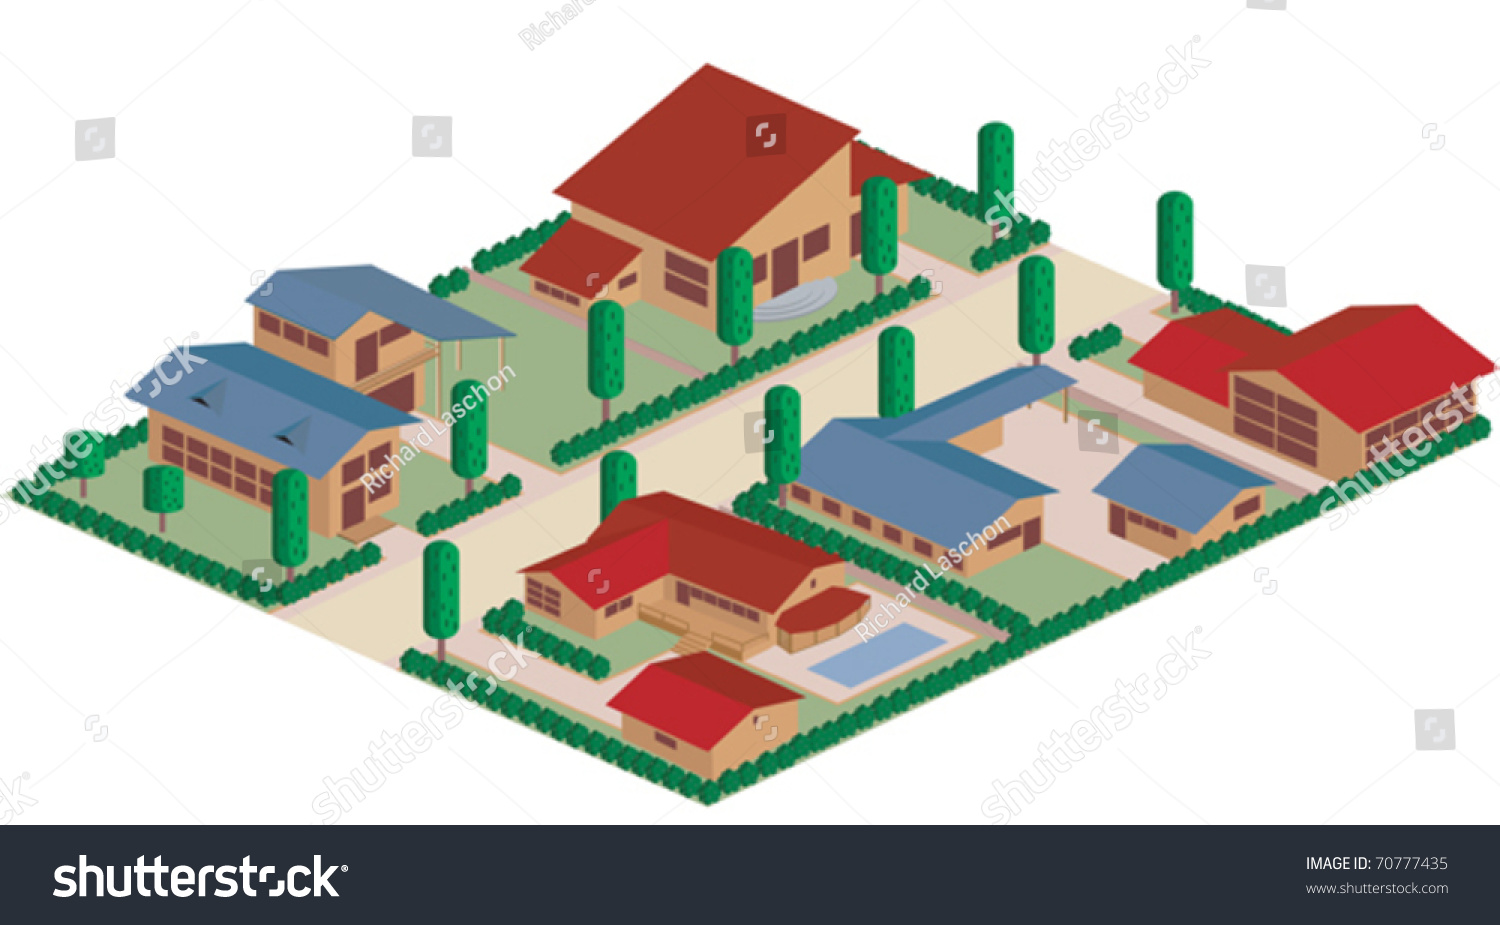 Cute Ibanez Gio Wiring Thick Wire 5 Way Switch Regular Dimarzio Switch Bulldog Security System Young 5 Way Switch Diagram DarkDimarzio Push Pull Pot Cartoon Map Residential District Area Stock Vector 70777435 ..